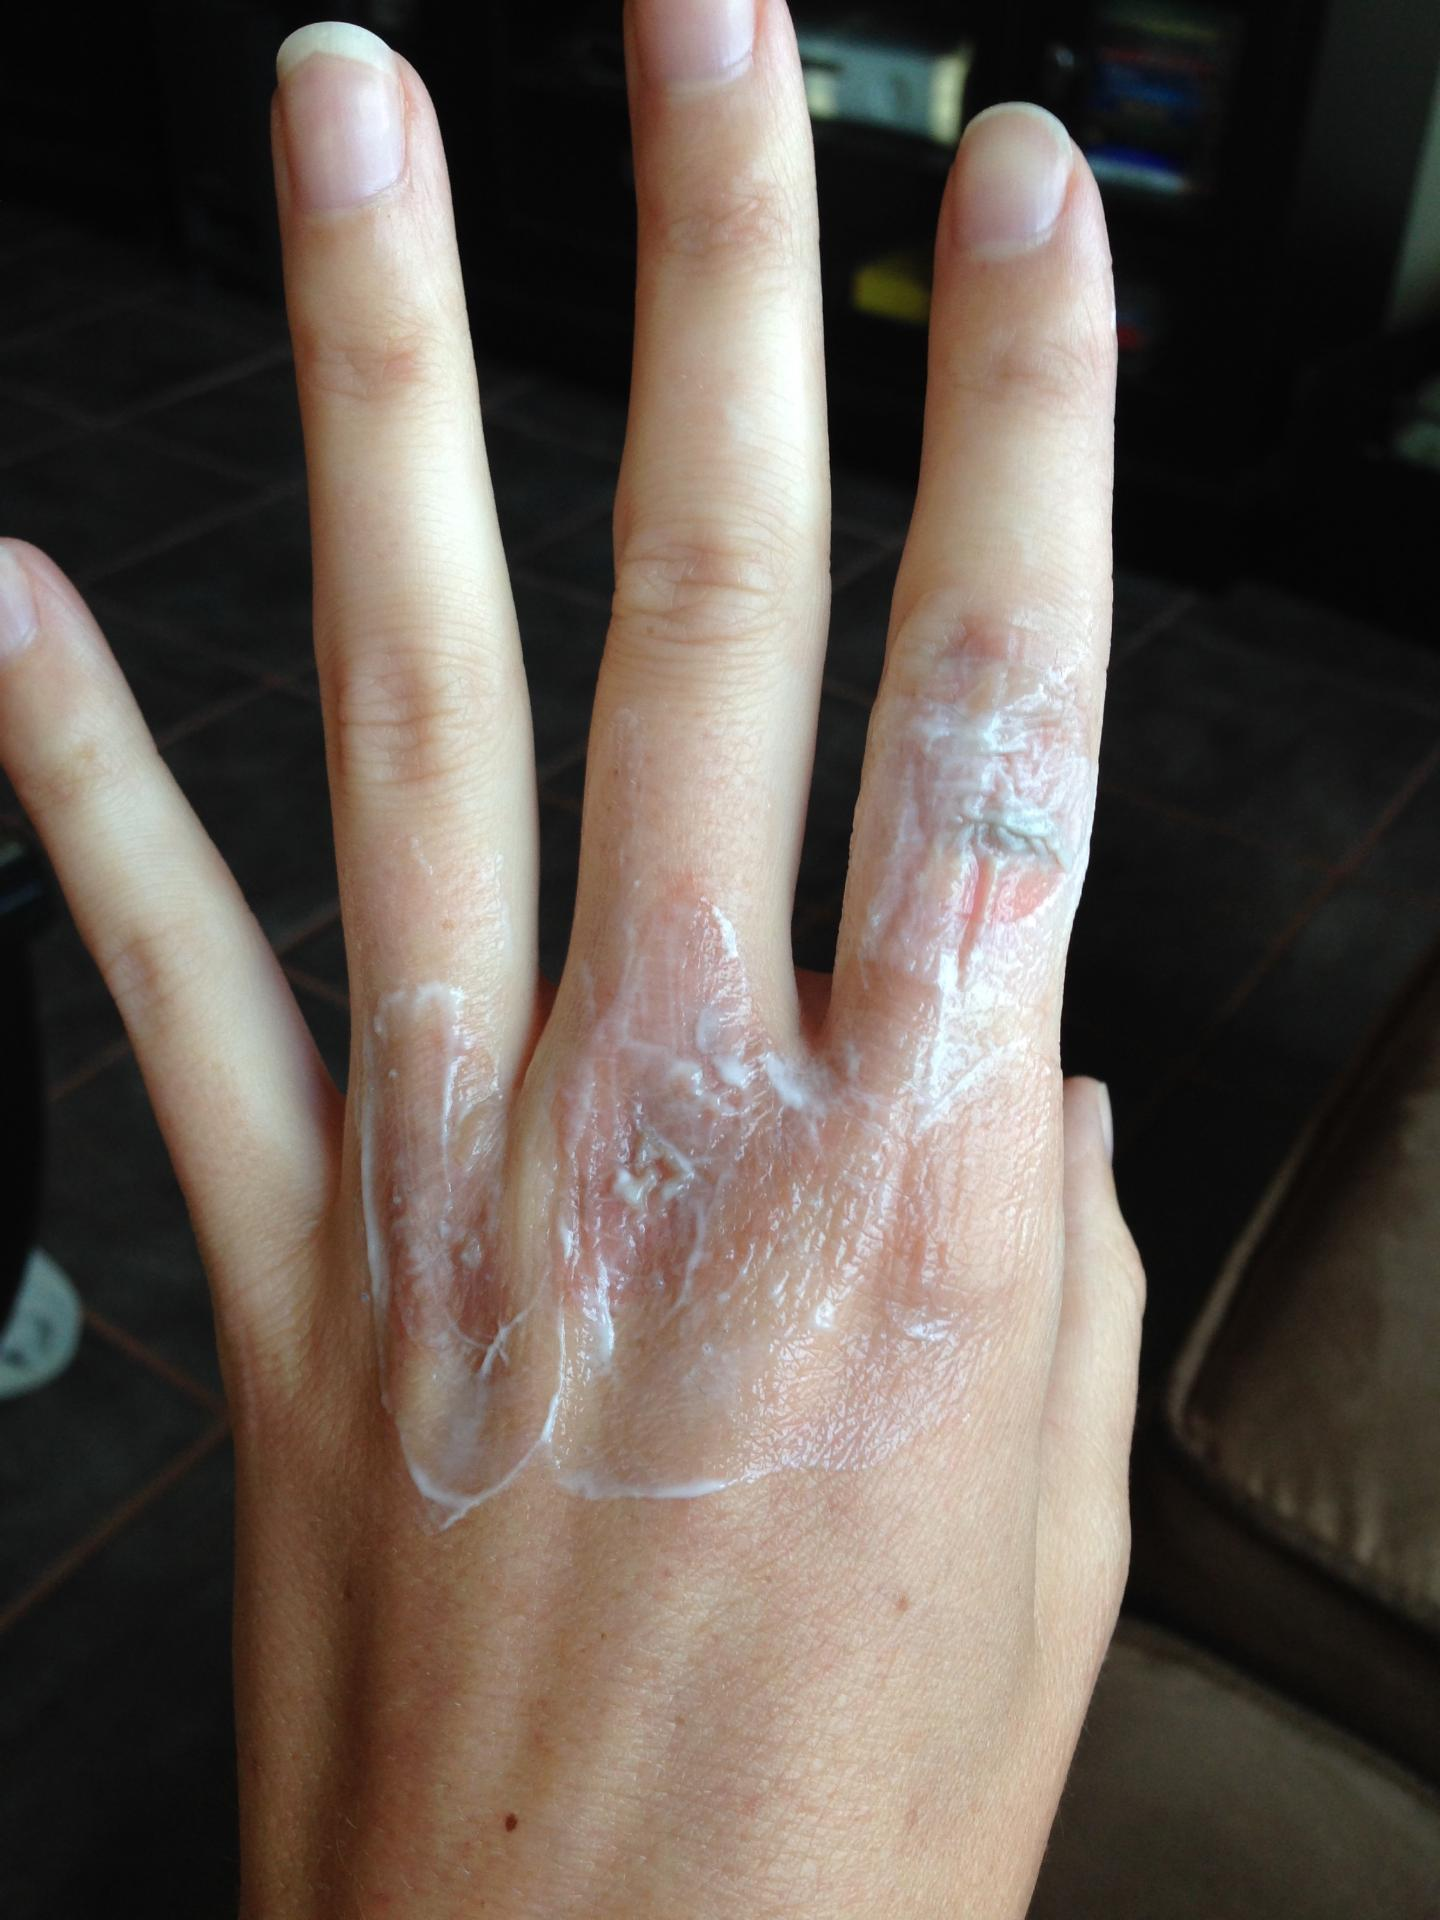 burned-hand-with-msm-cream.jpg